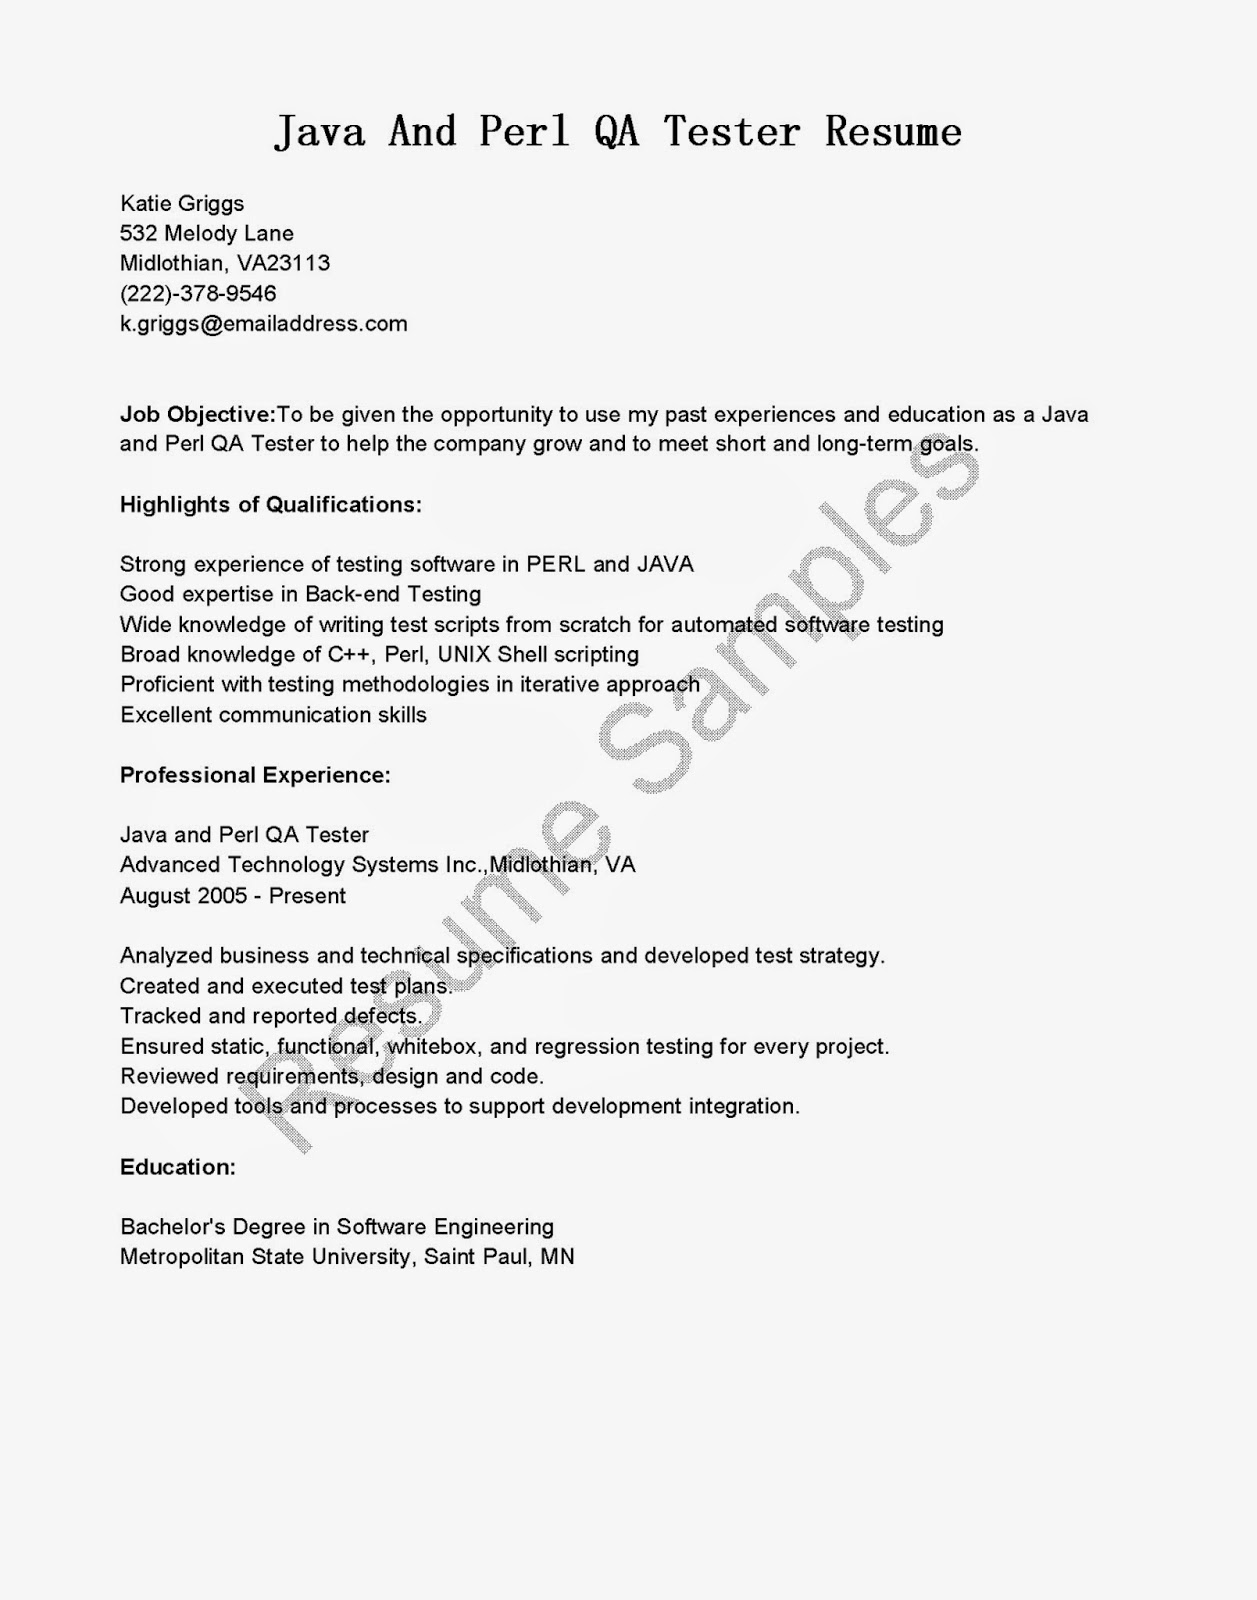 qa tester resume resume format download pdf - Game Tester Resume